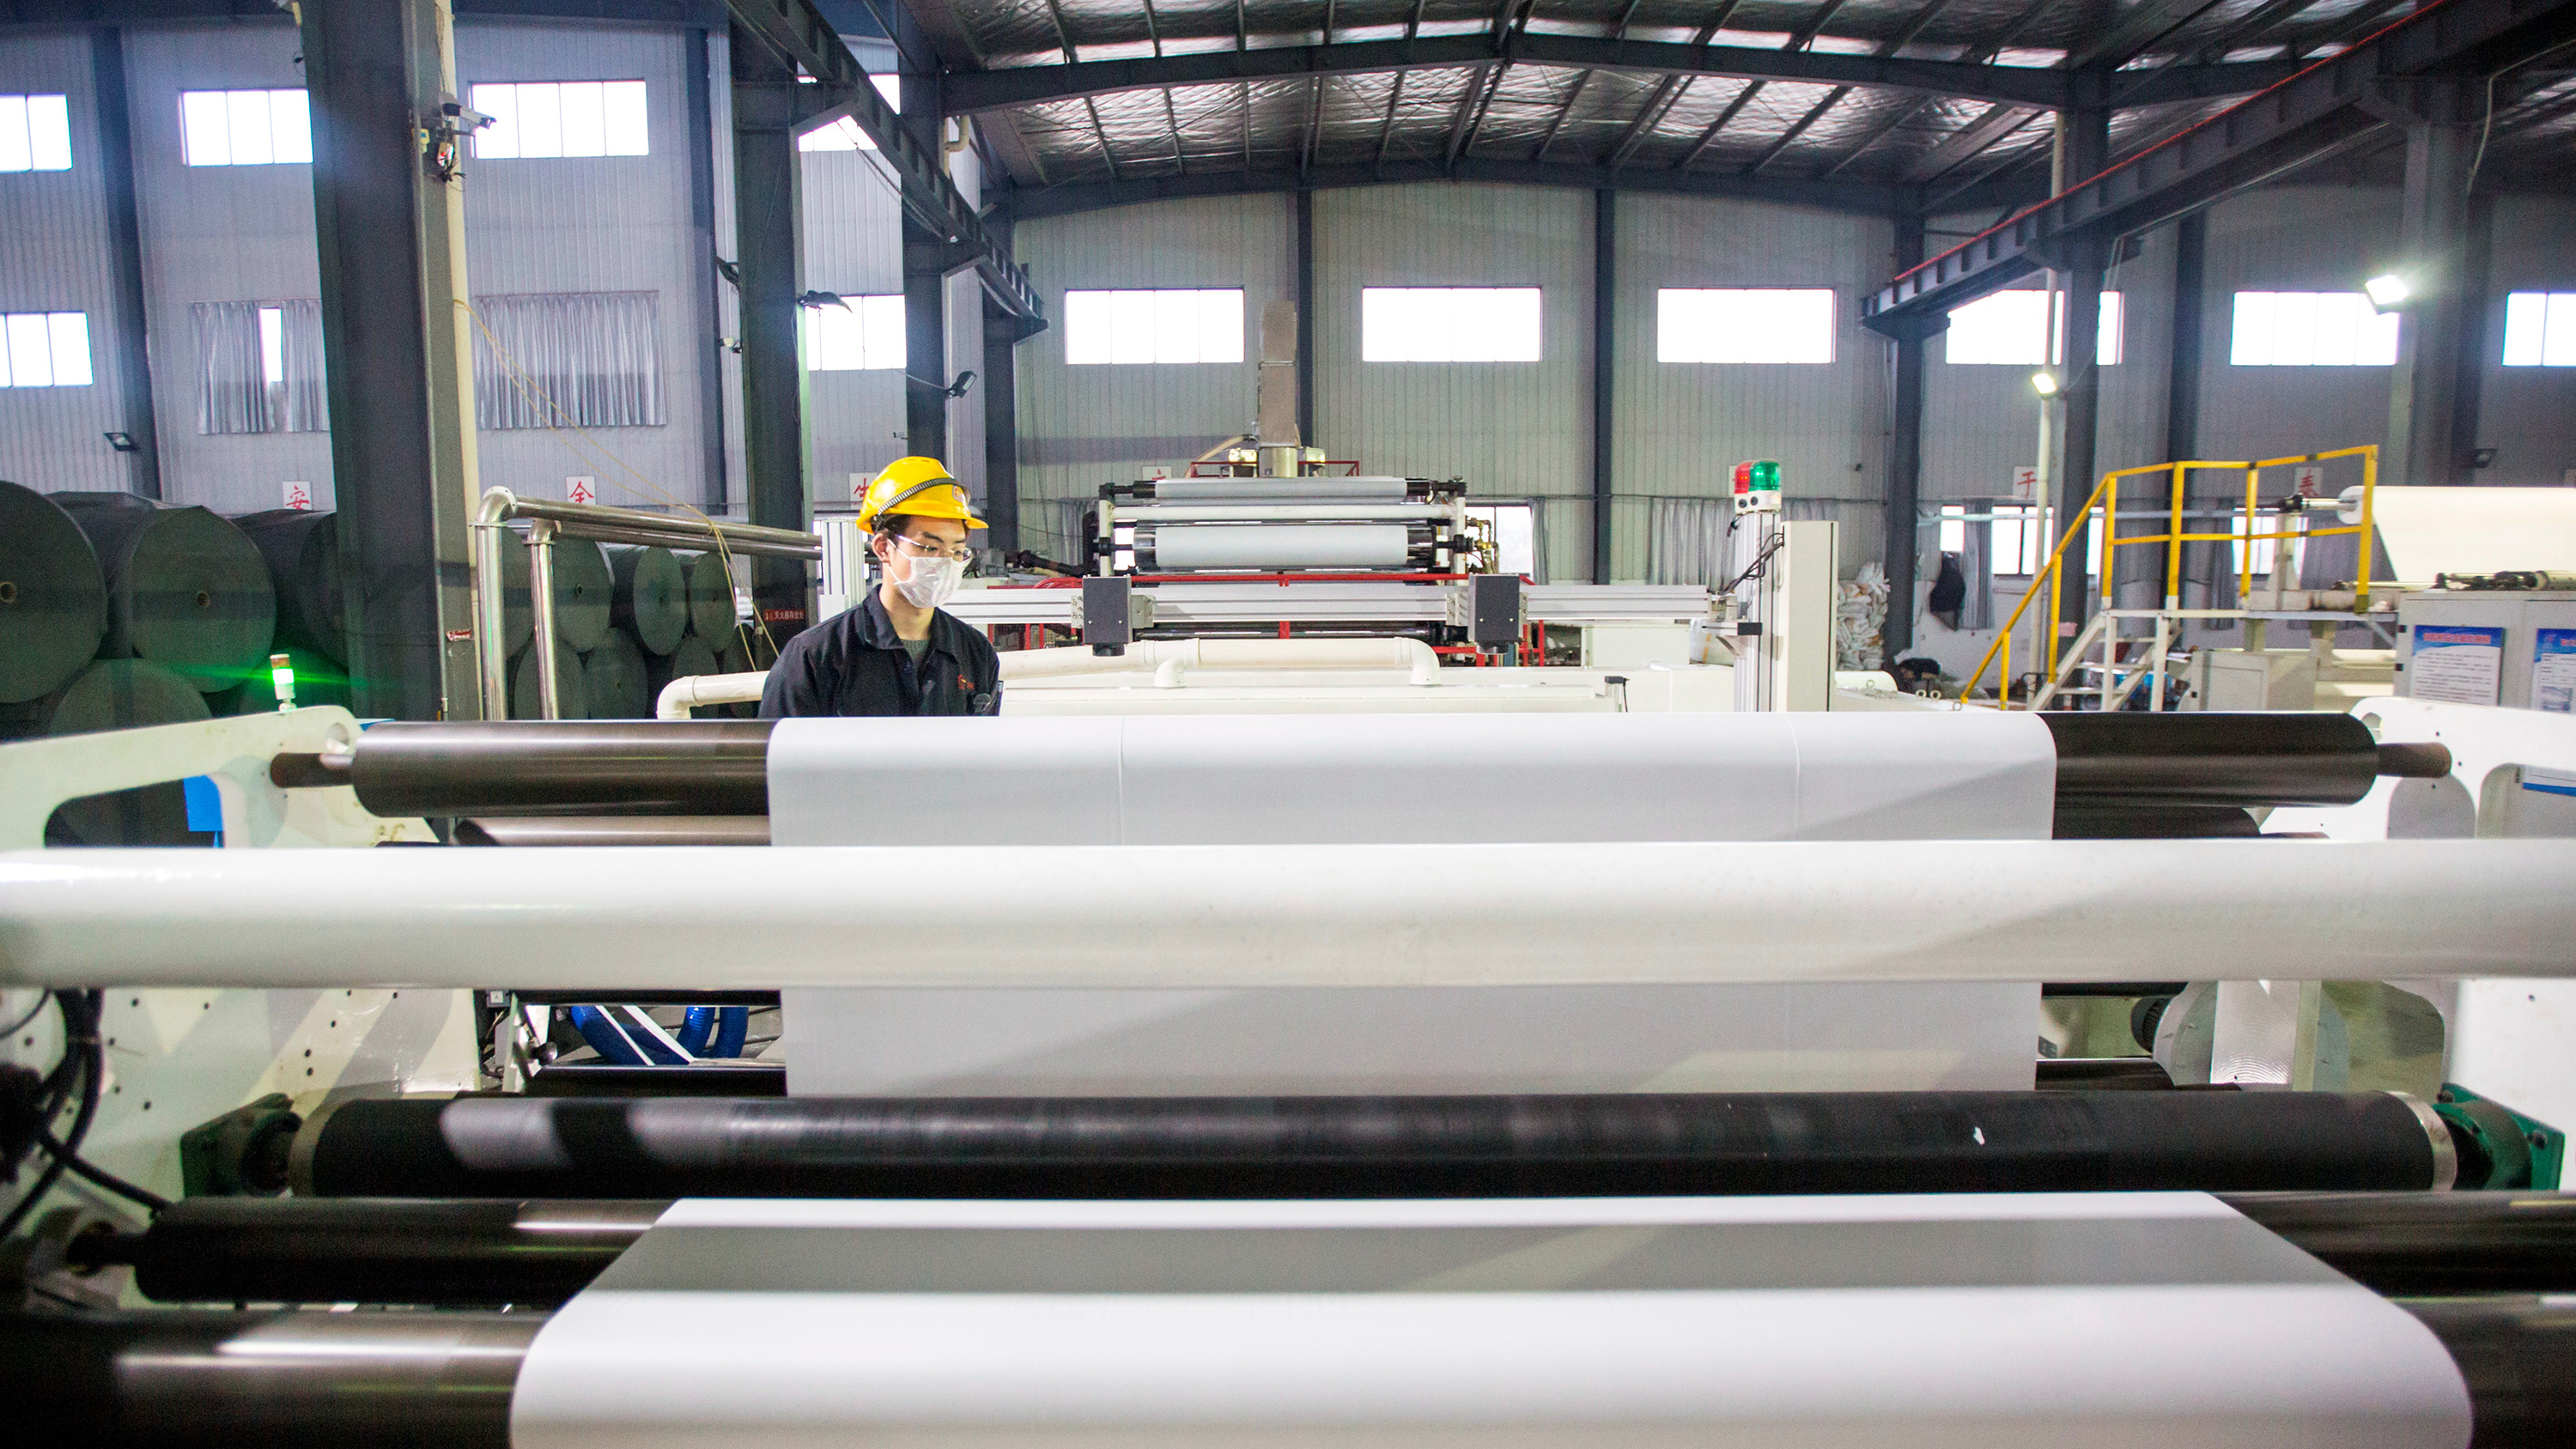 Picture shows a single worker standing amid machinery that has massive rolls of material on spools.